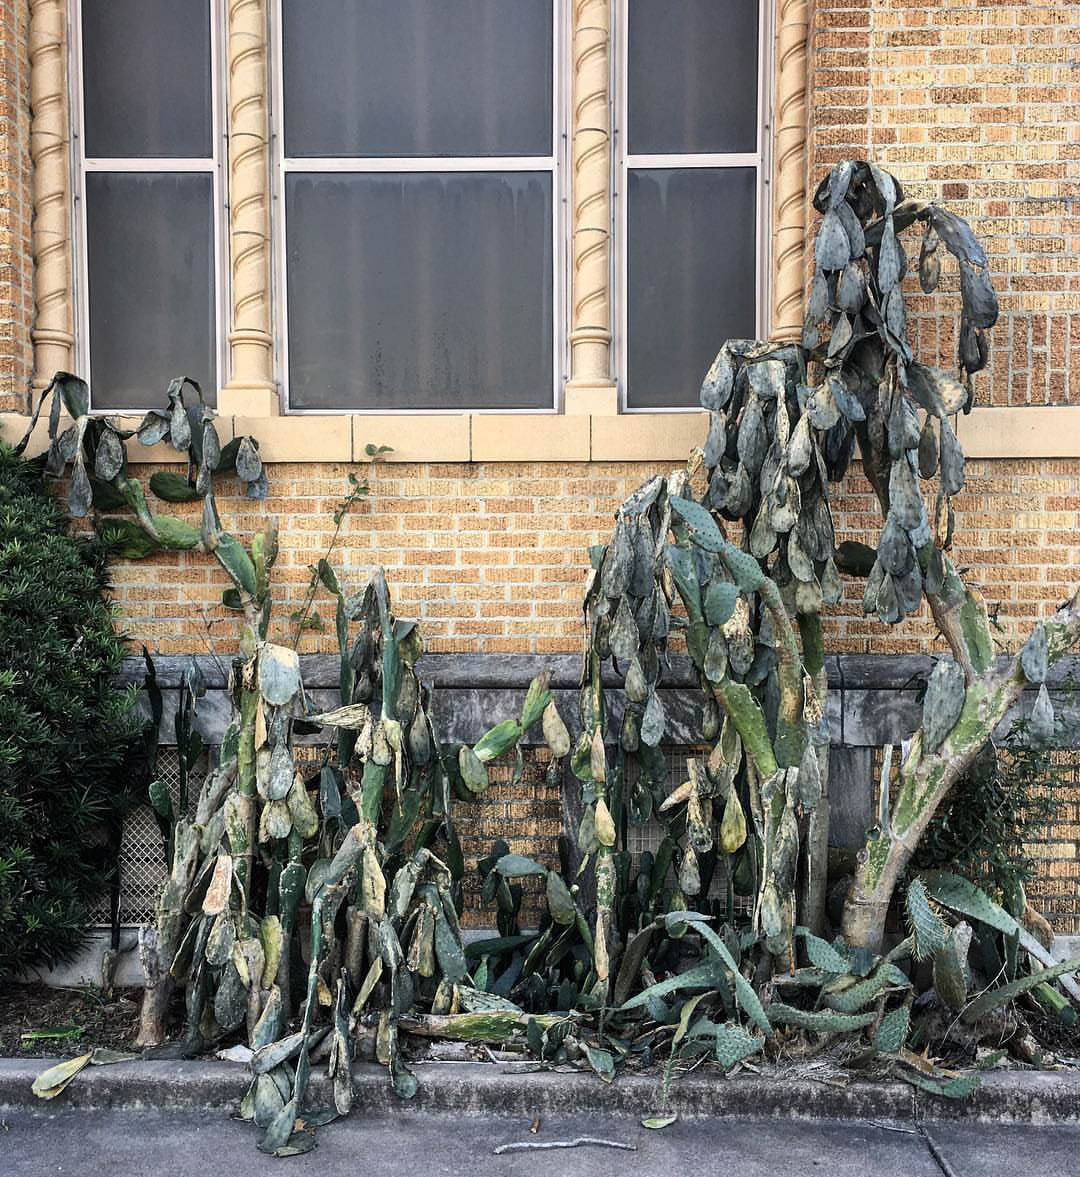 Decomposing cactus in an urban setting